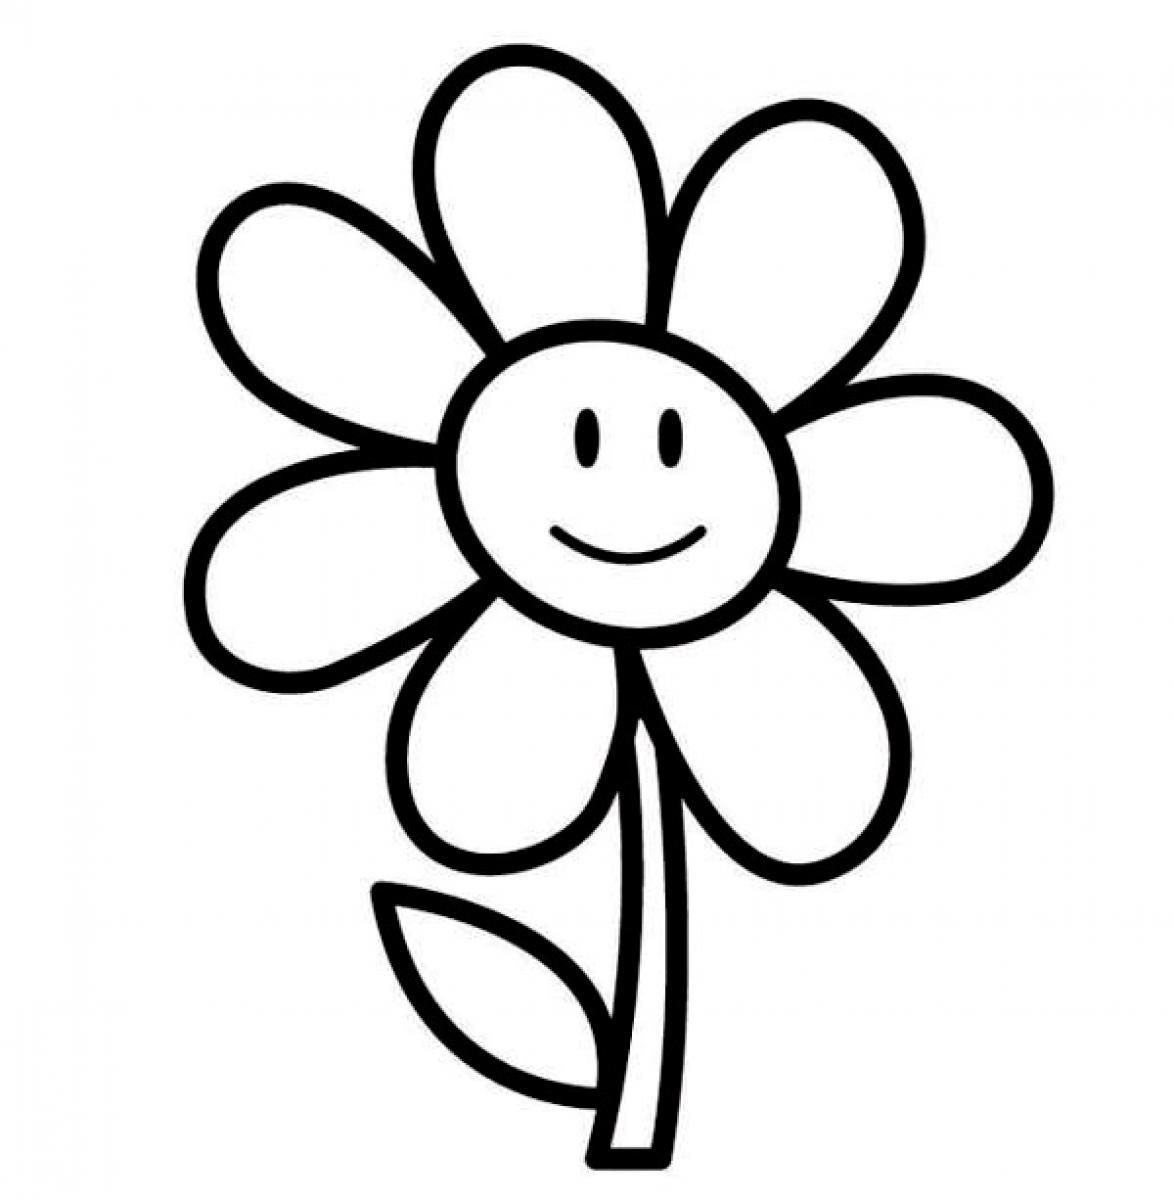 easy spring flower coloring pages - VoteForVerde.com